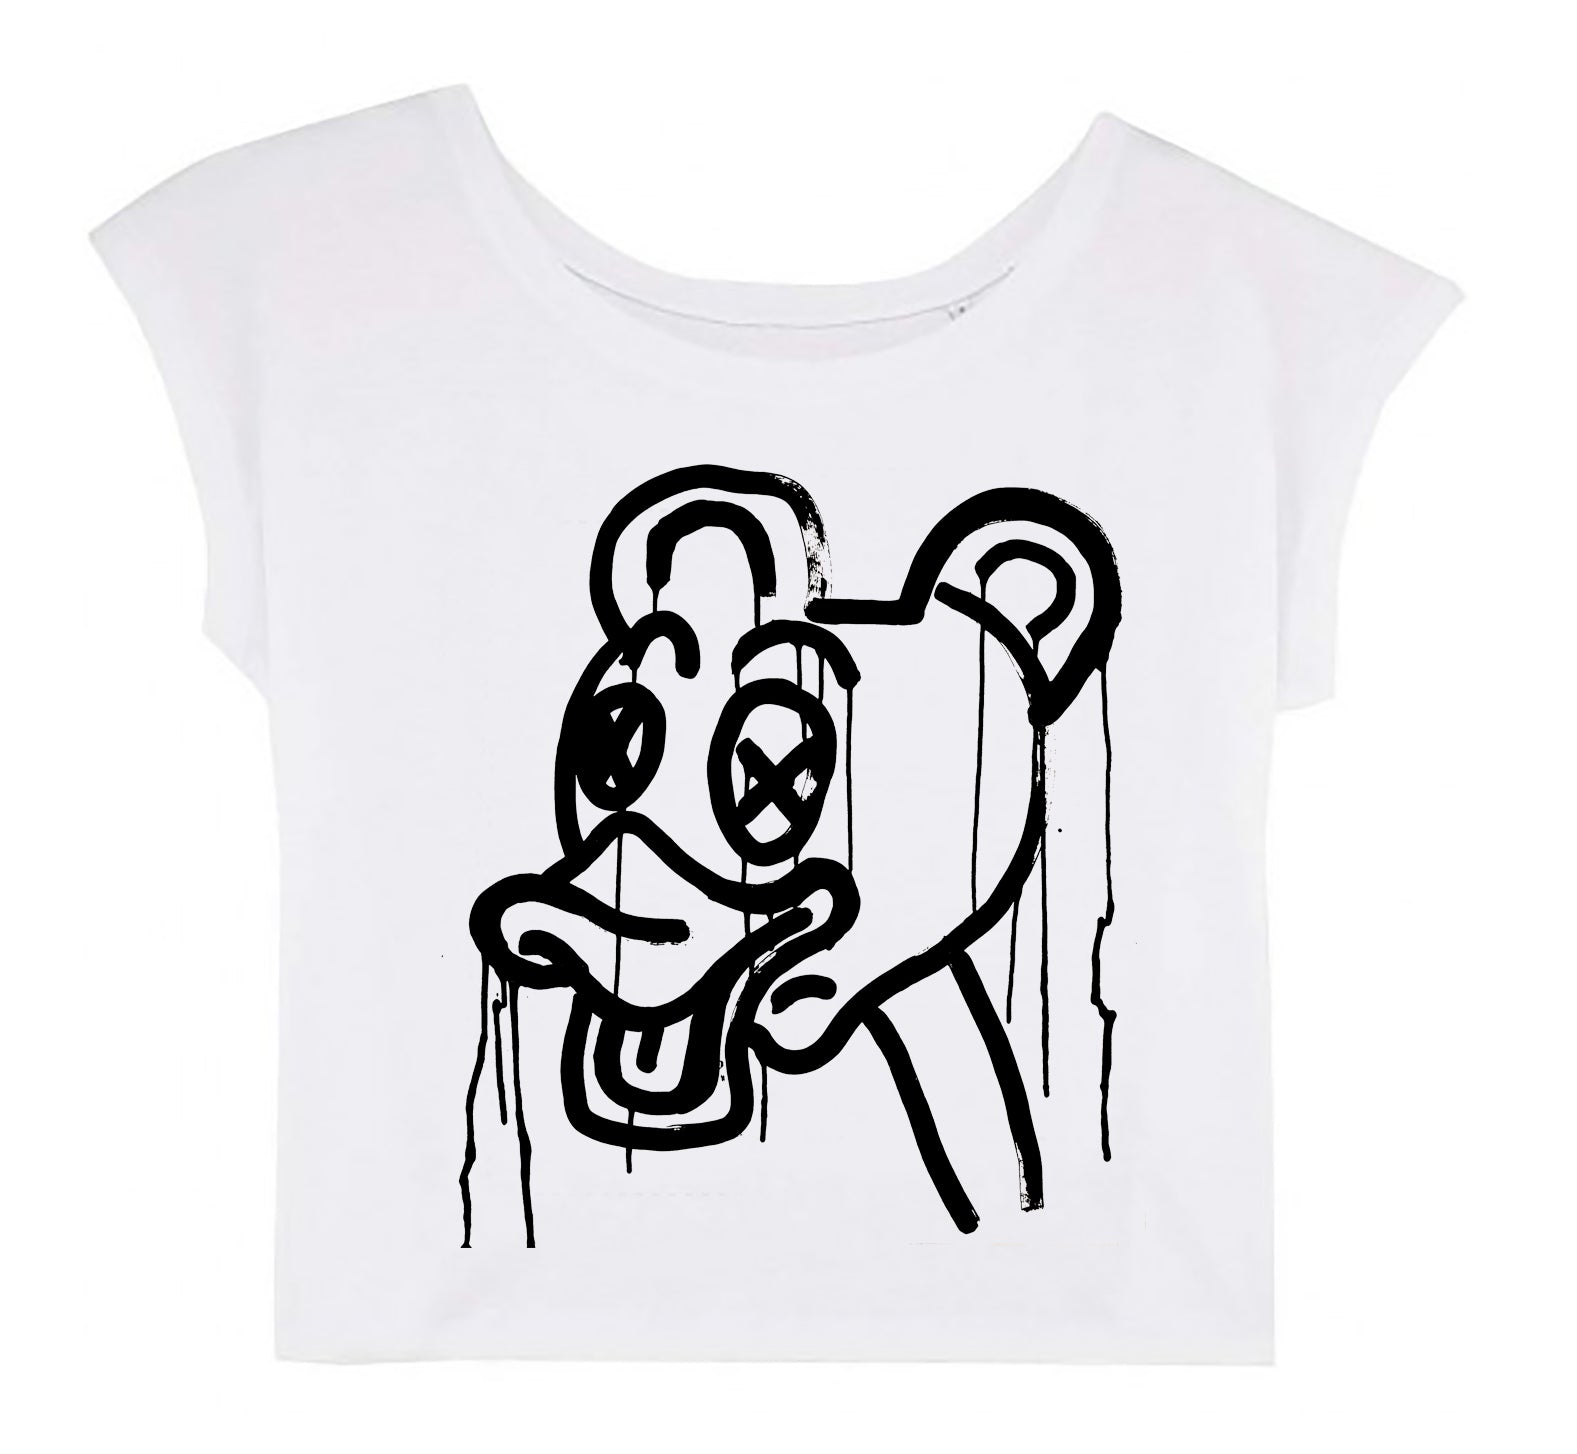 Women's Cropped T-shirt - Apocalypse According to Disney 2 │ Lea Rasovszky - Mobius Store